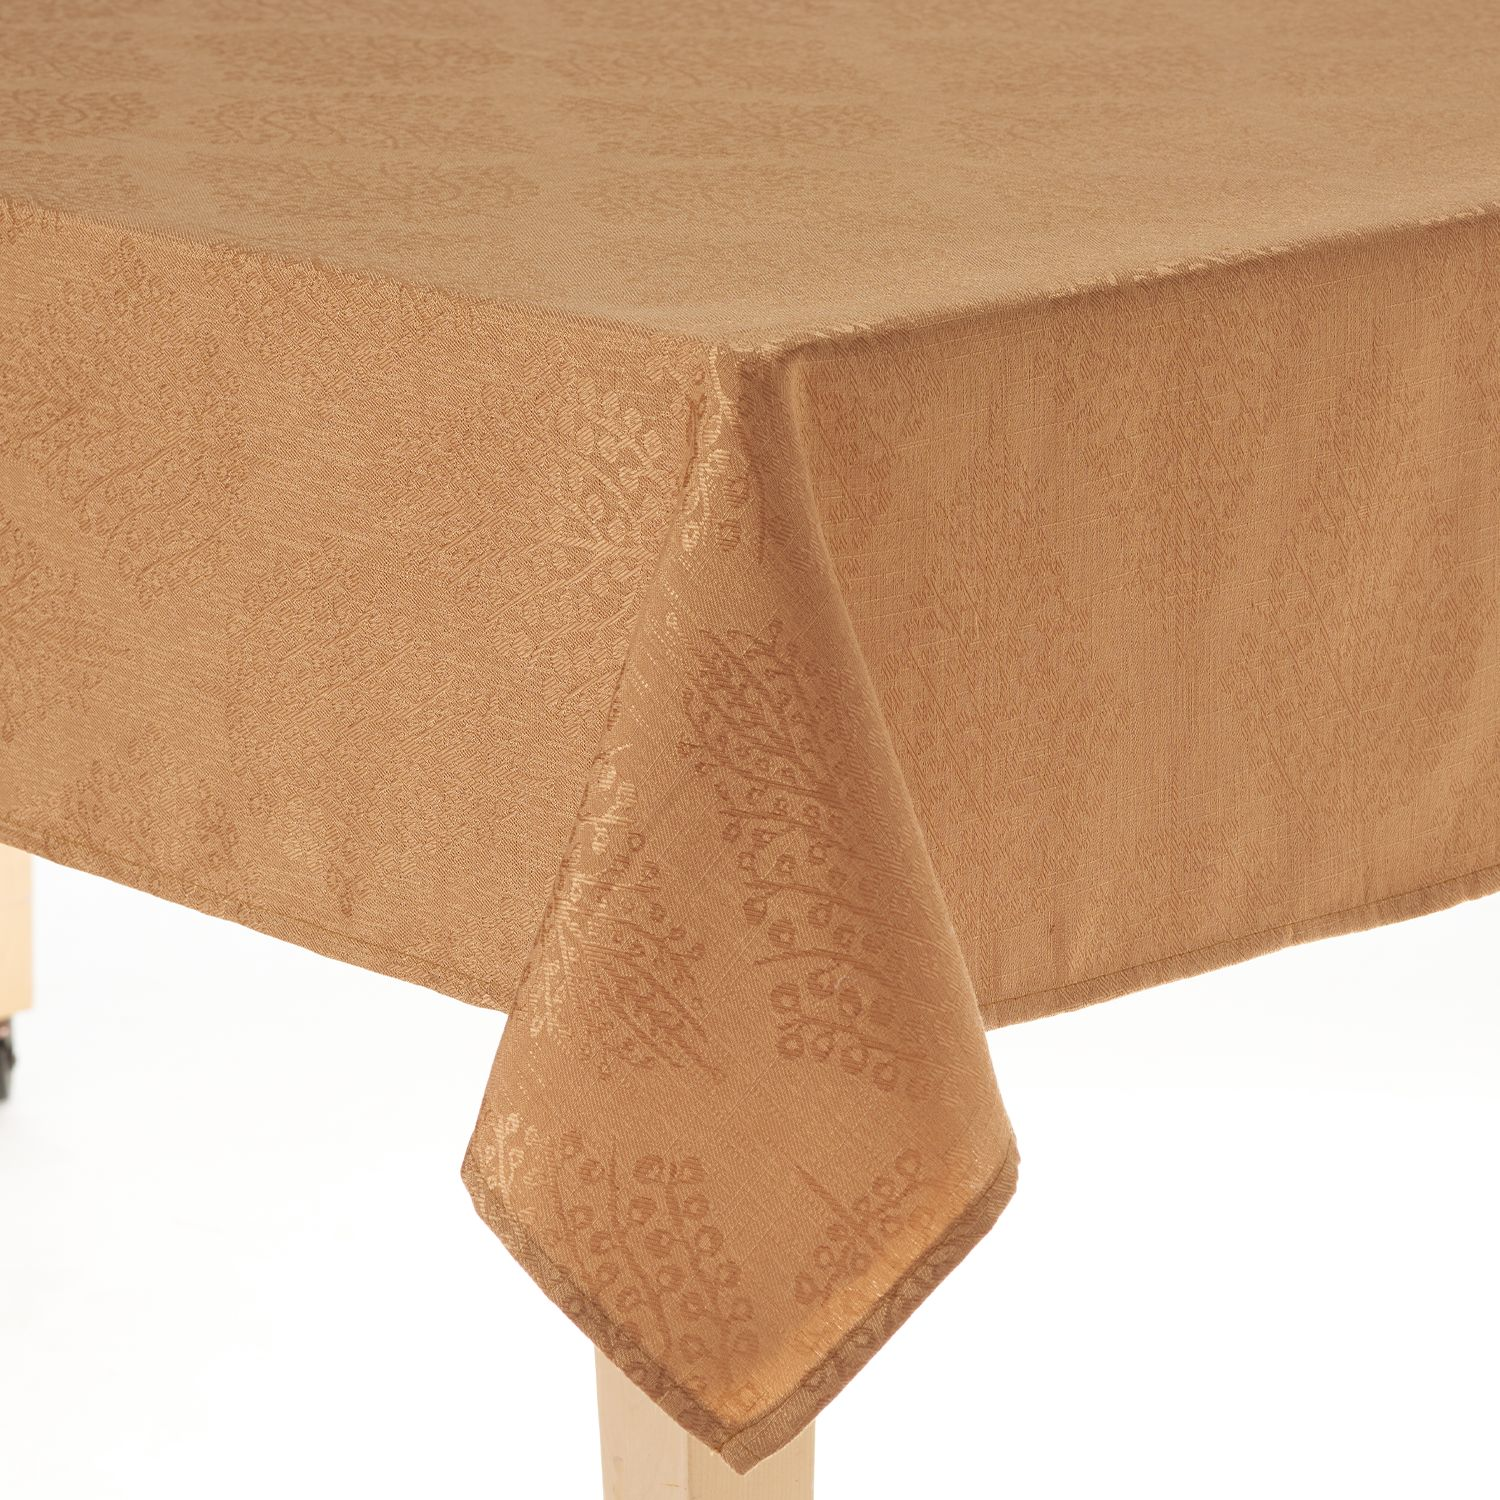 Cuisinart Spice Tree Stain Resistant Microfiber Tablecloth